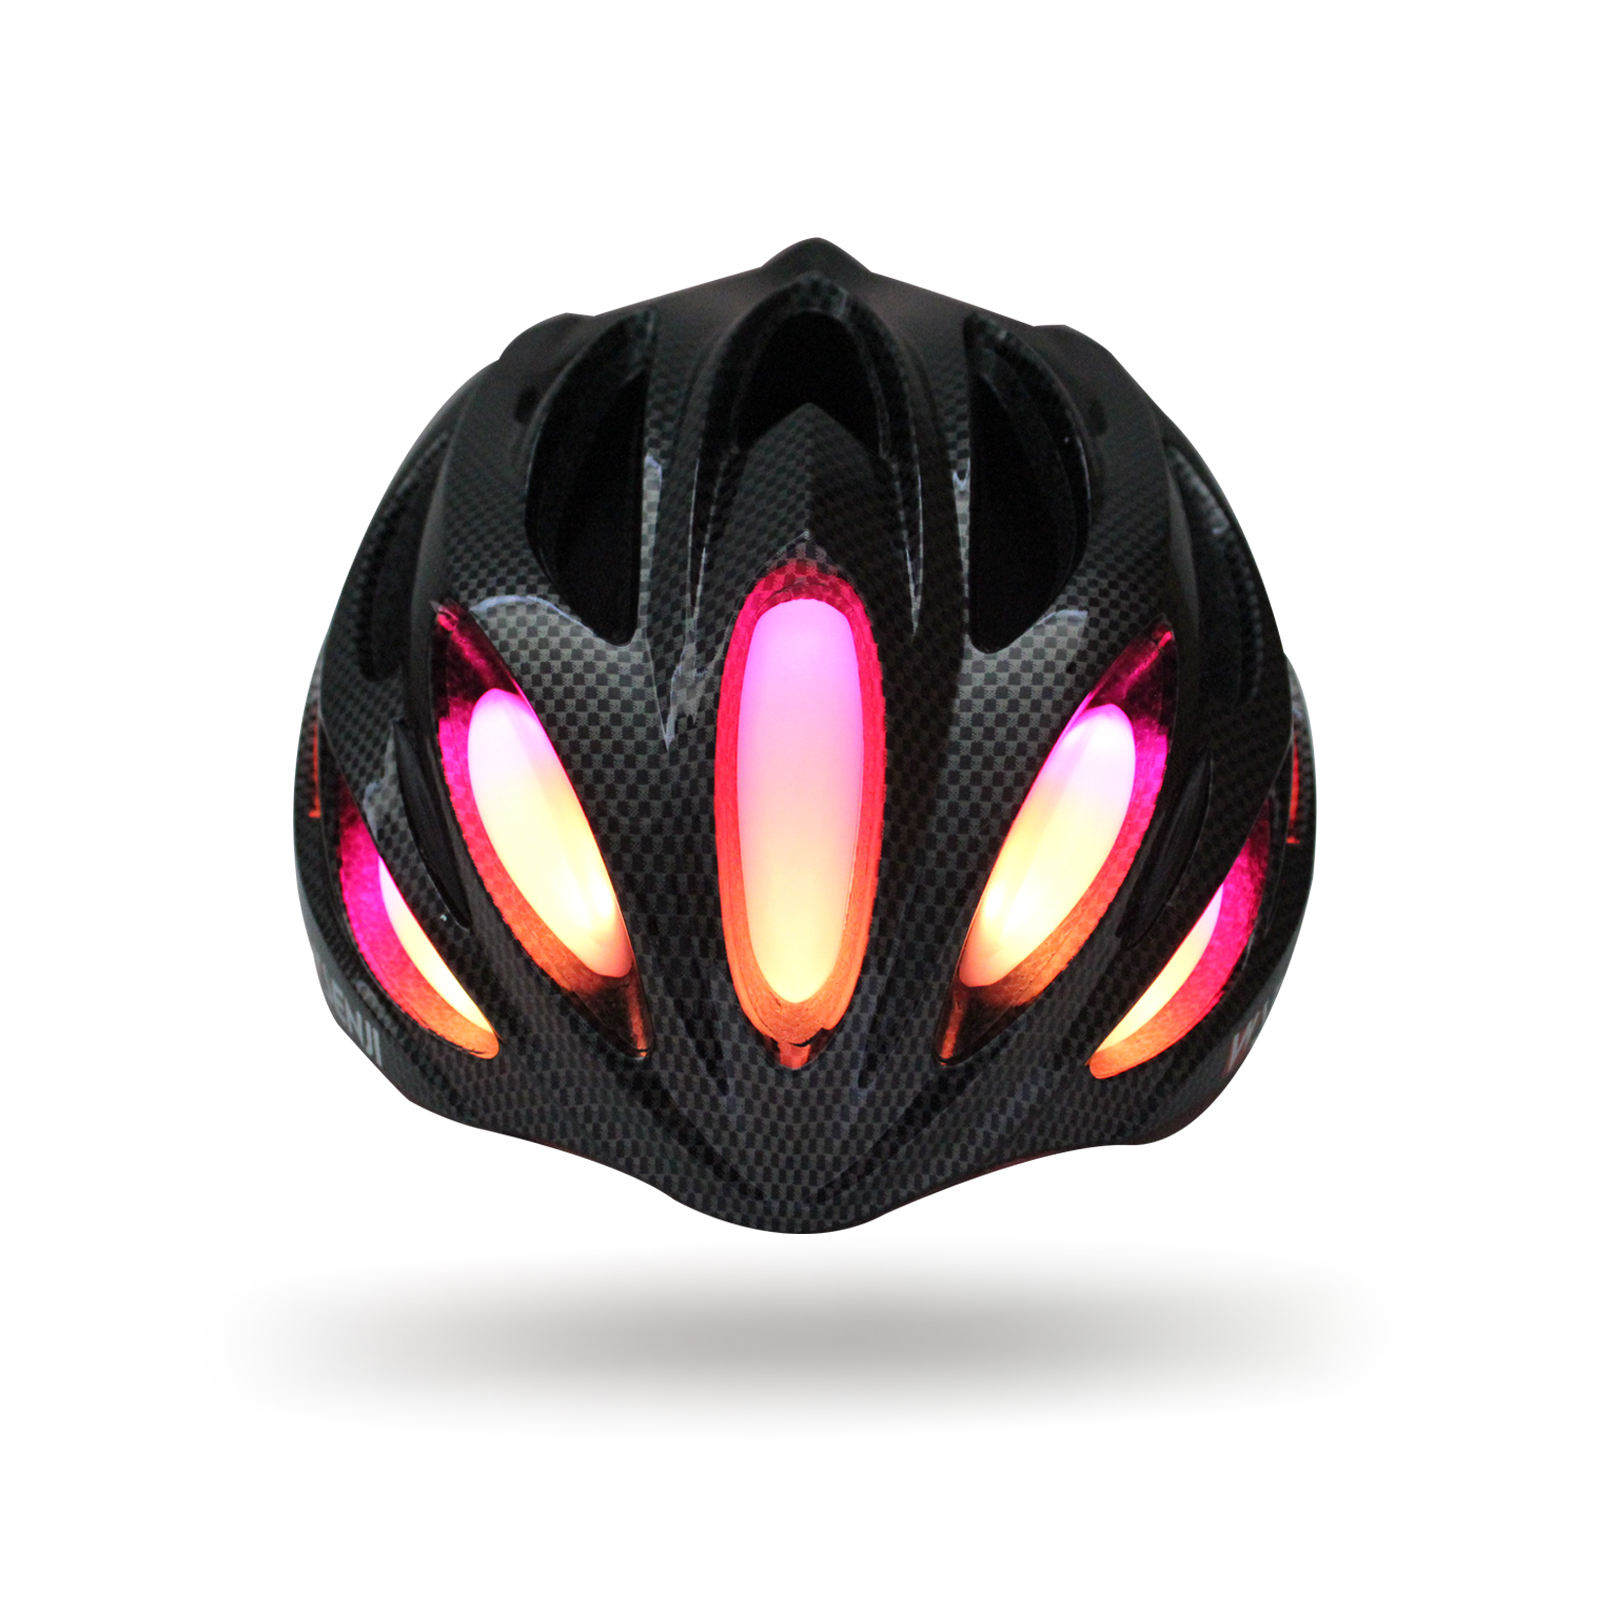 Bike Helmet with Safety Light , Adjustable Cycling/Bicycle Helmet for Road/Mountain Men/Women